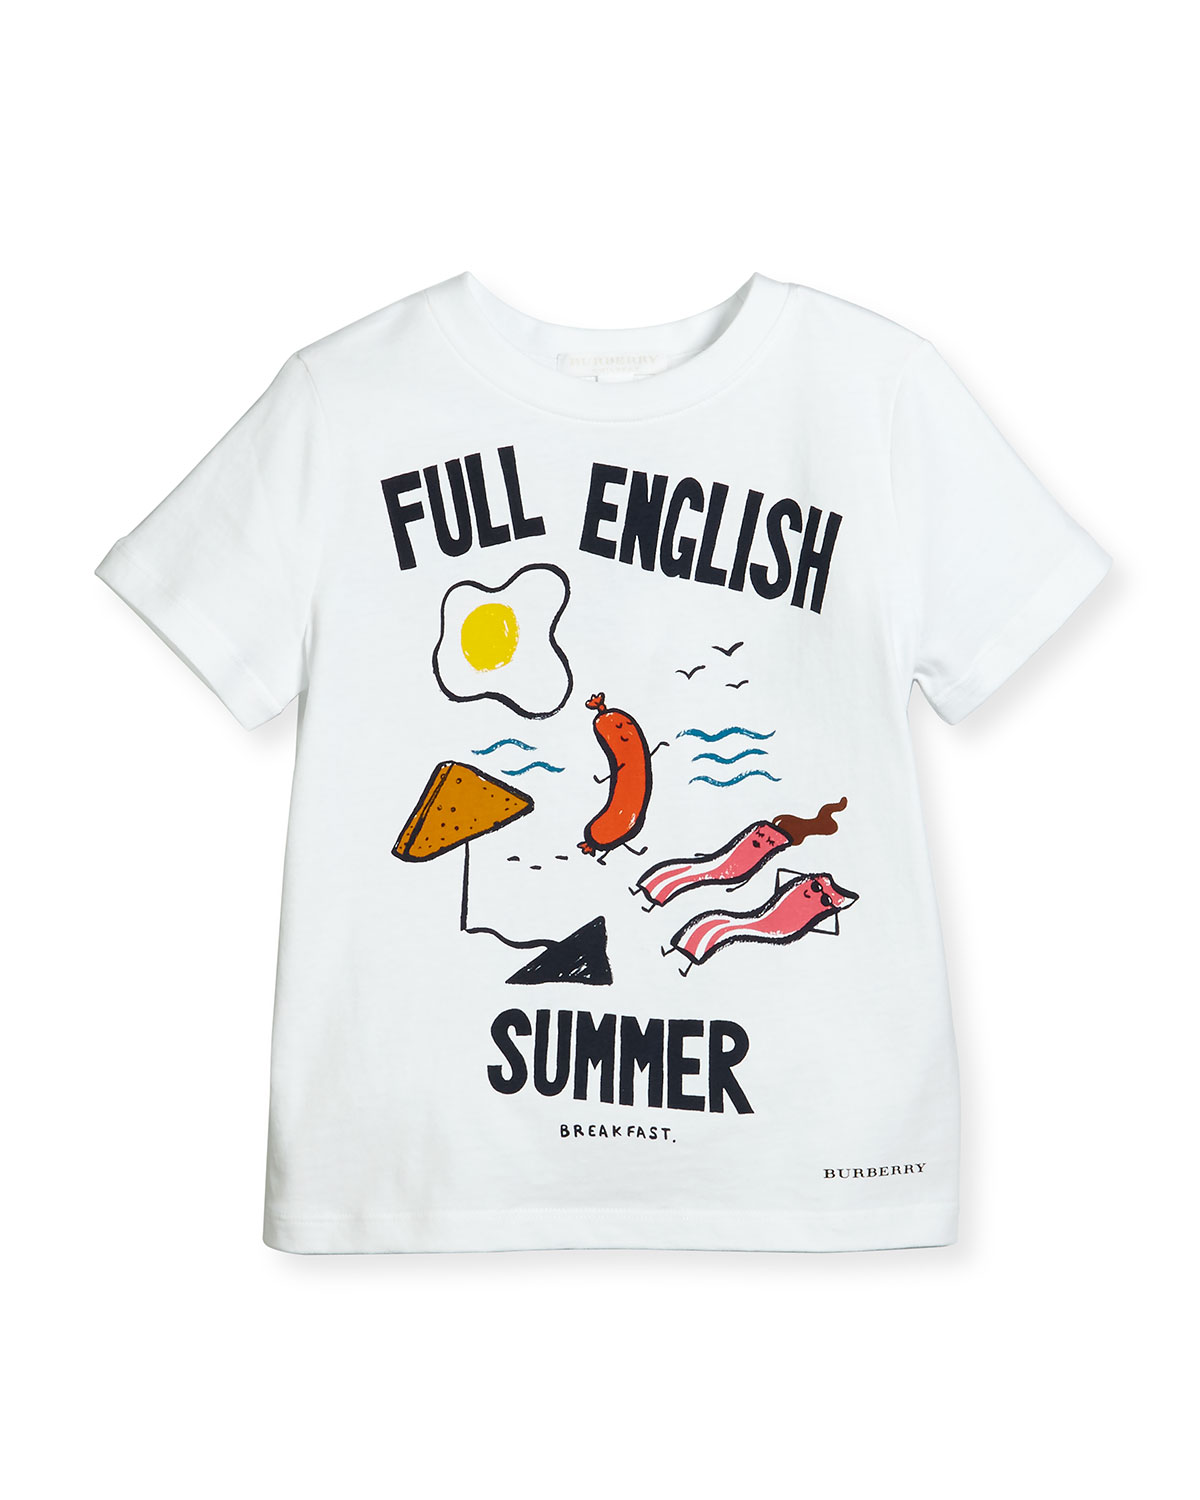 Full English Summer Tee, White, 4-14